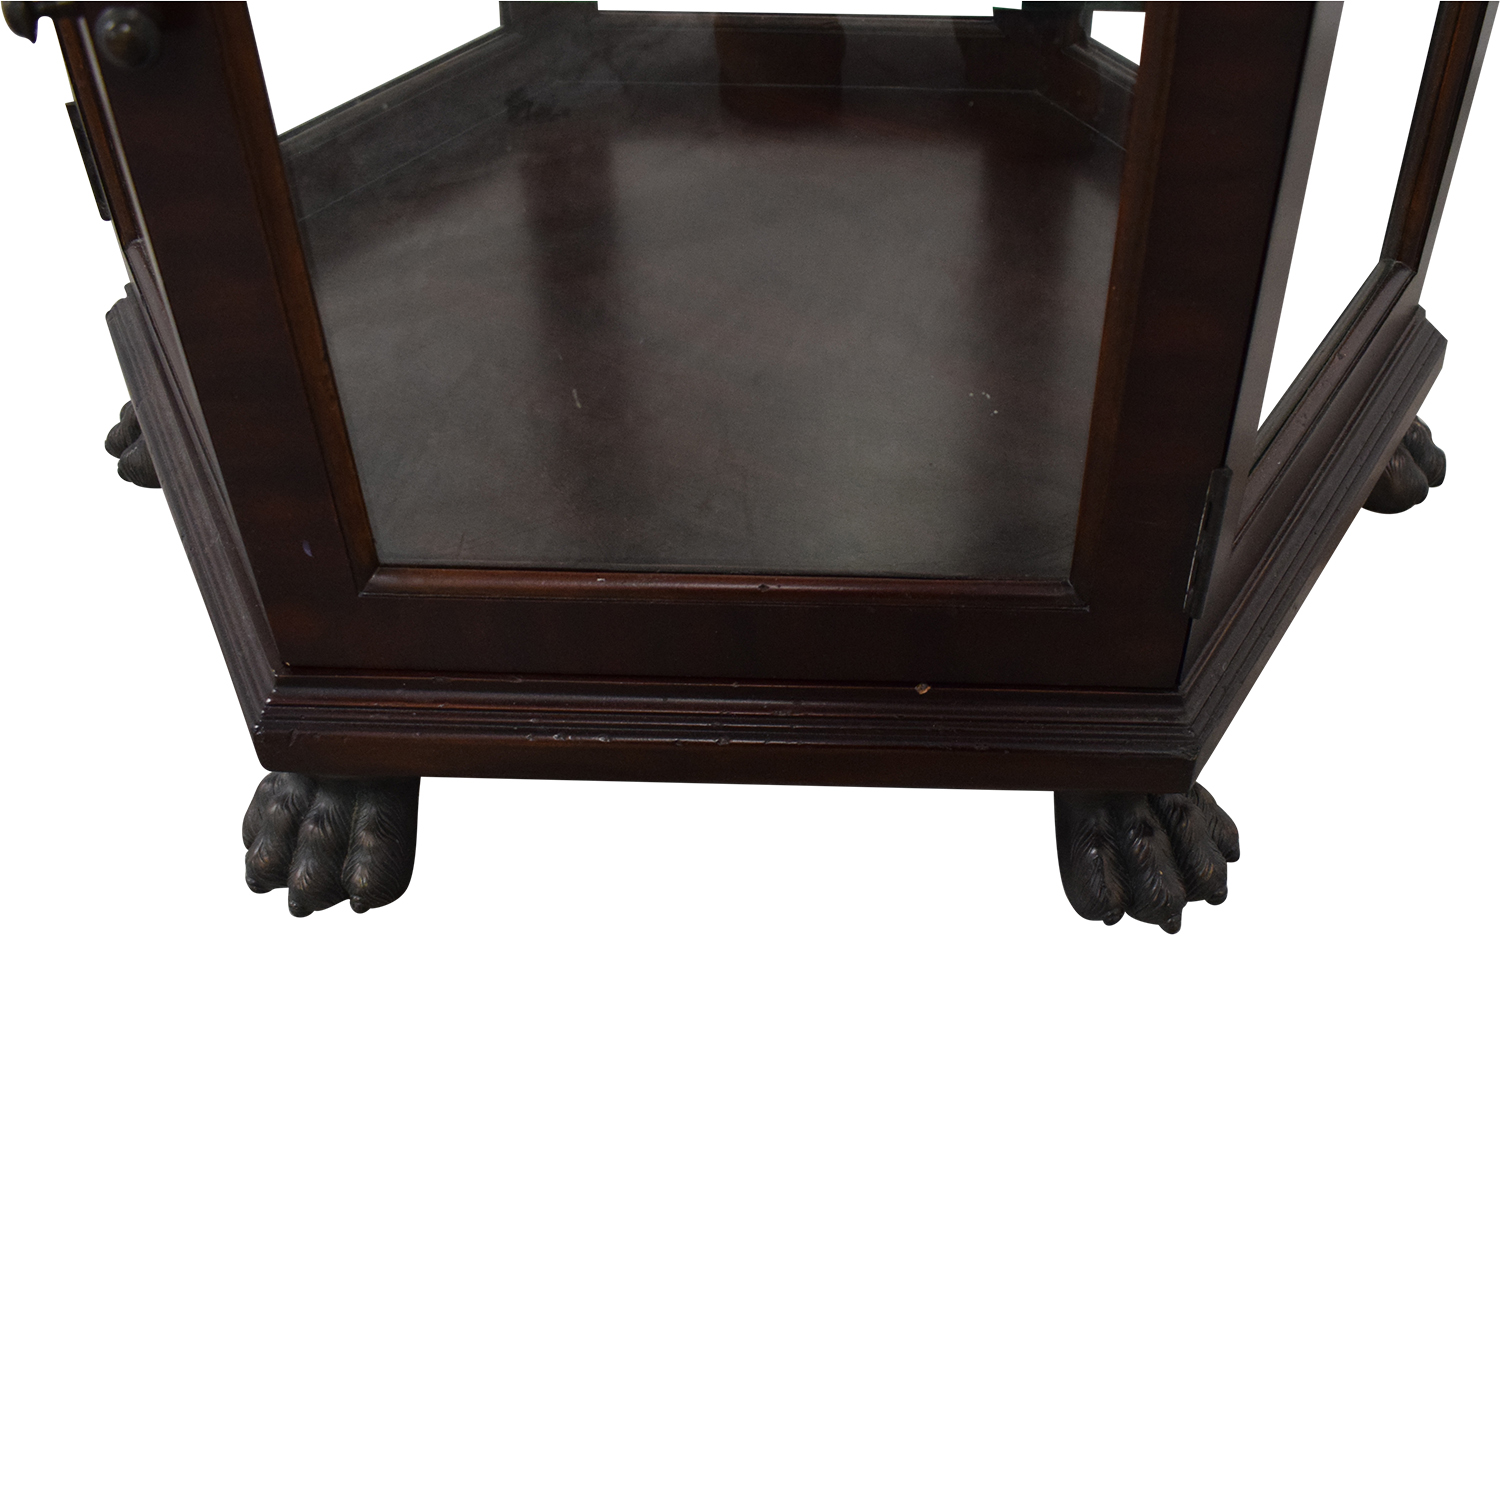 Thomasville Thomasville End Table with Storage Tables